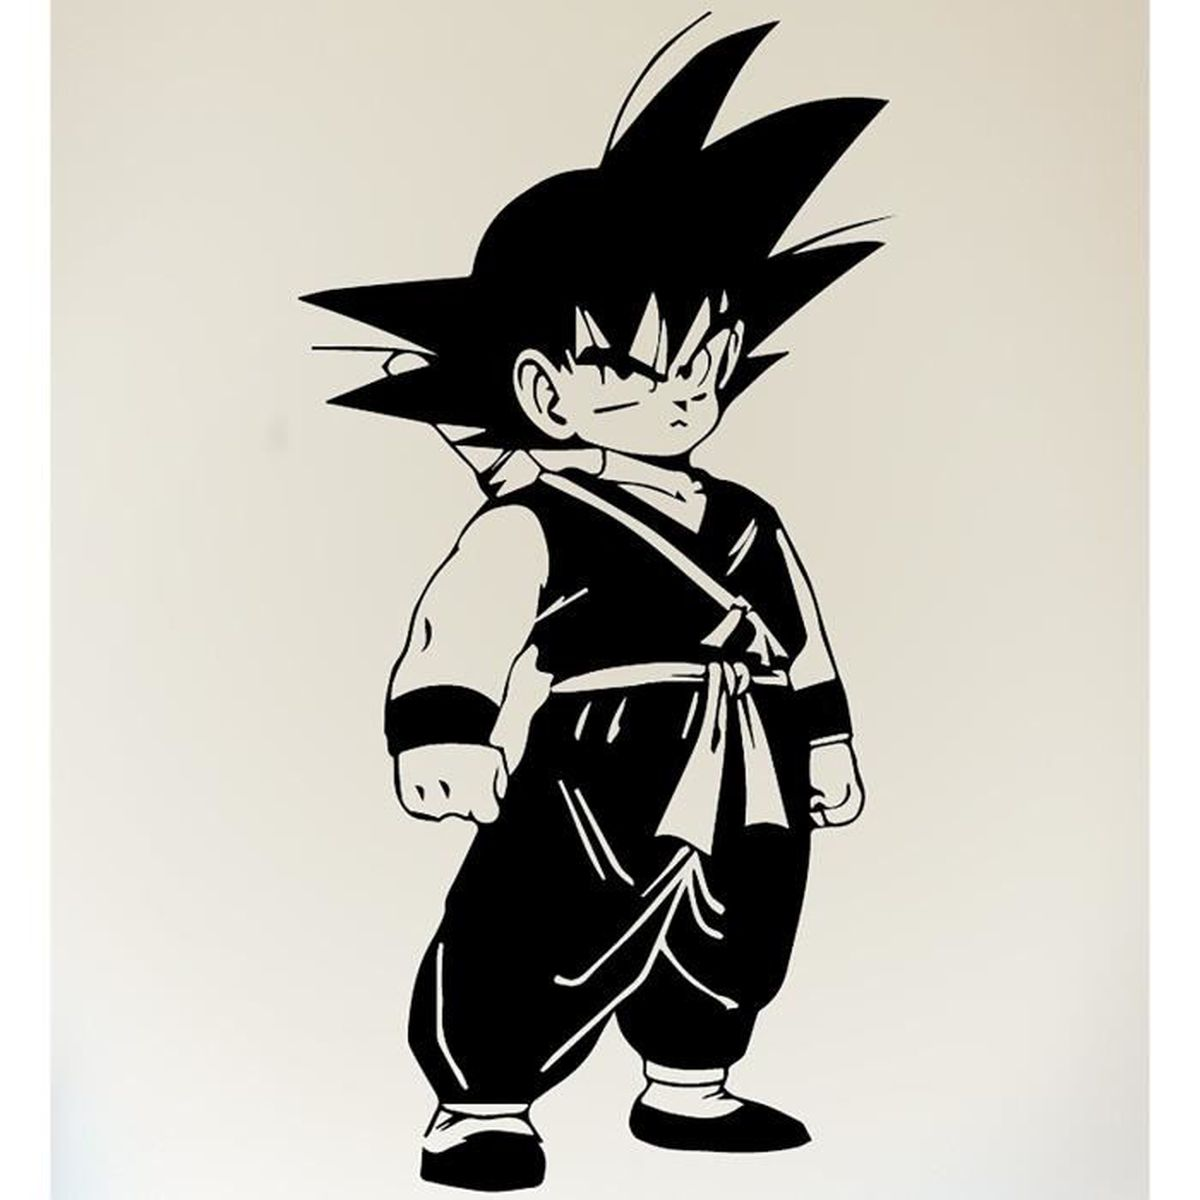 Son Goku Sticker Autocollant Dragon Ball Z Dbz Manga